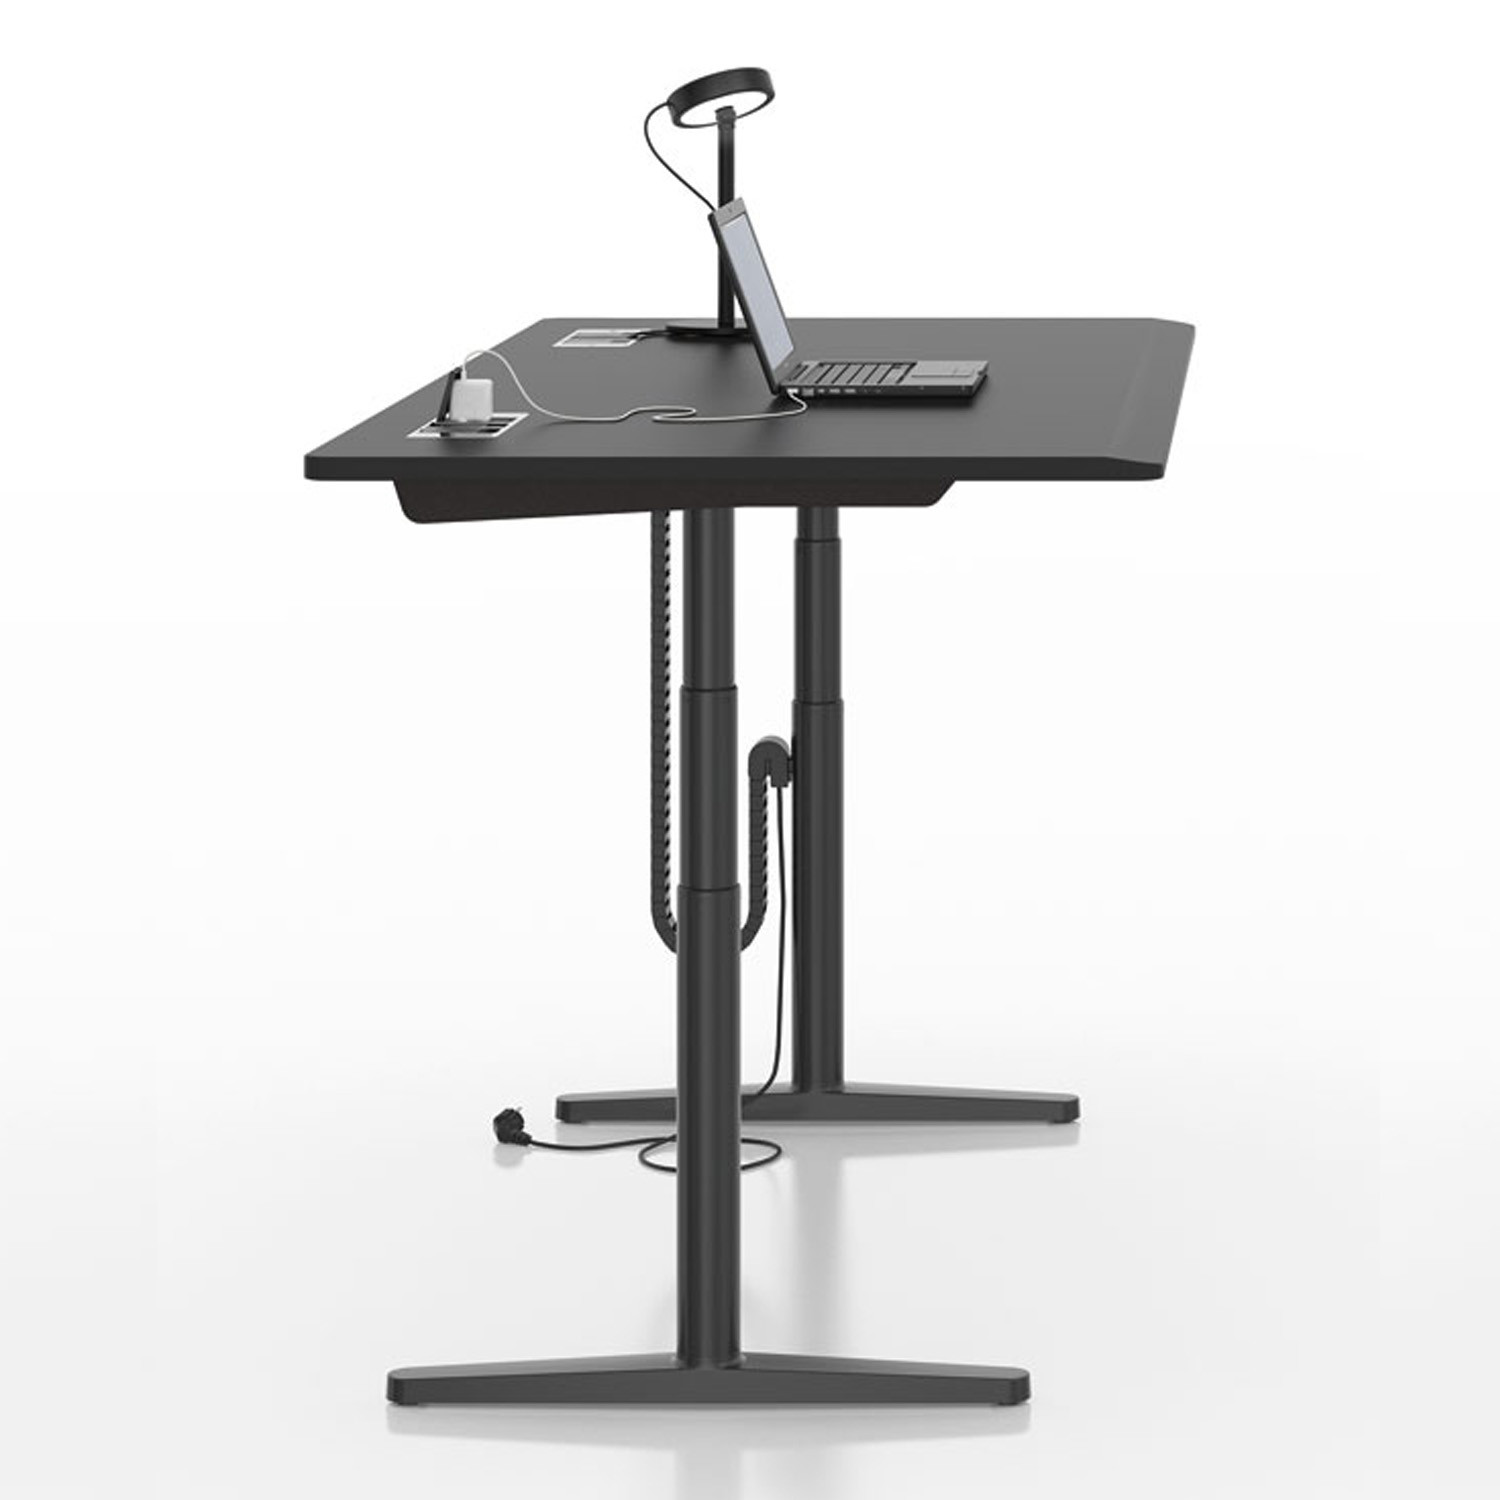 Vitra Tyde Table   Height Adjustable Sit-Stand Table   Apres Furniture - Tyde Sit-Stand Adjustable Desk; Vitra ...